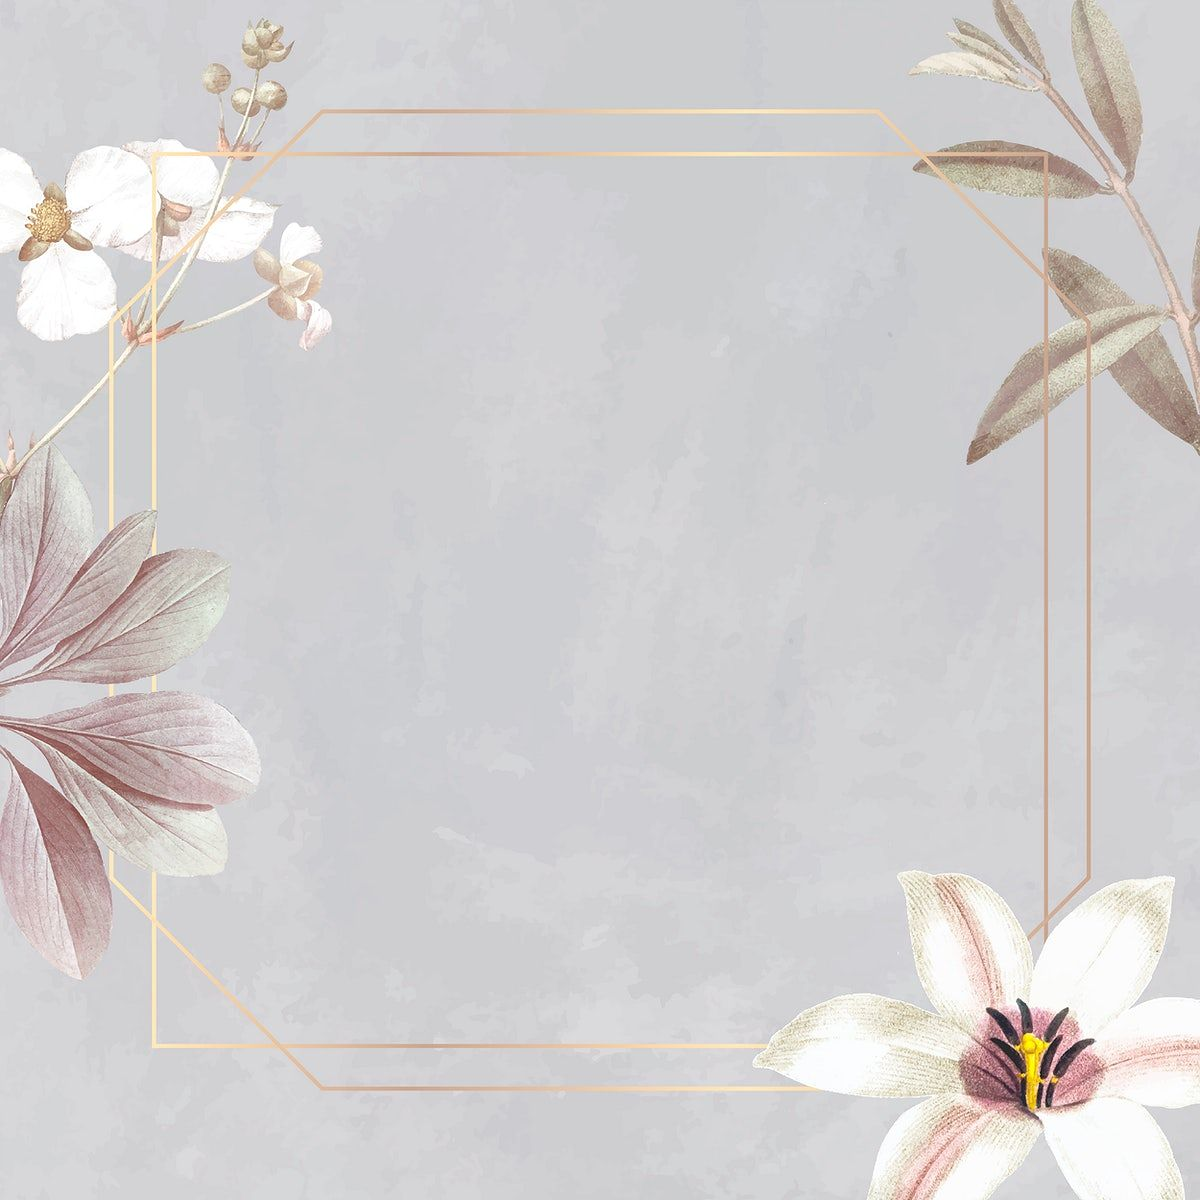 Download premium vector of Frame with lily and bulltongue